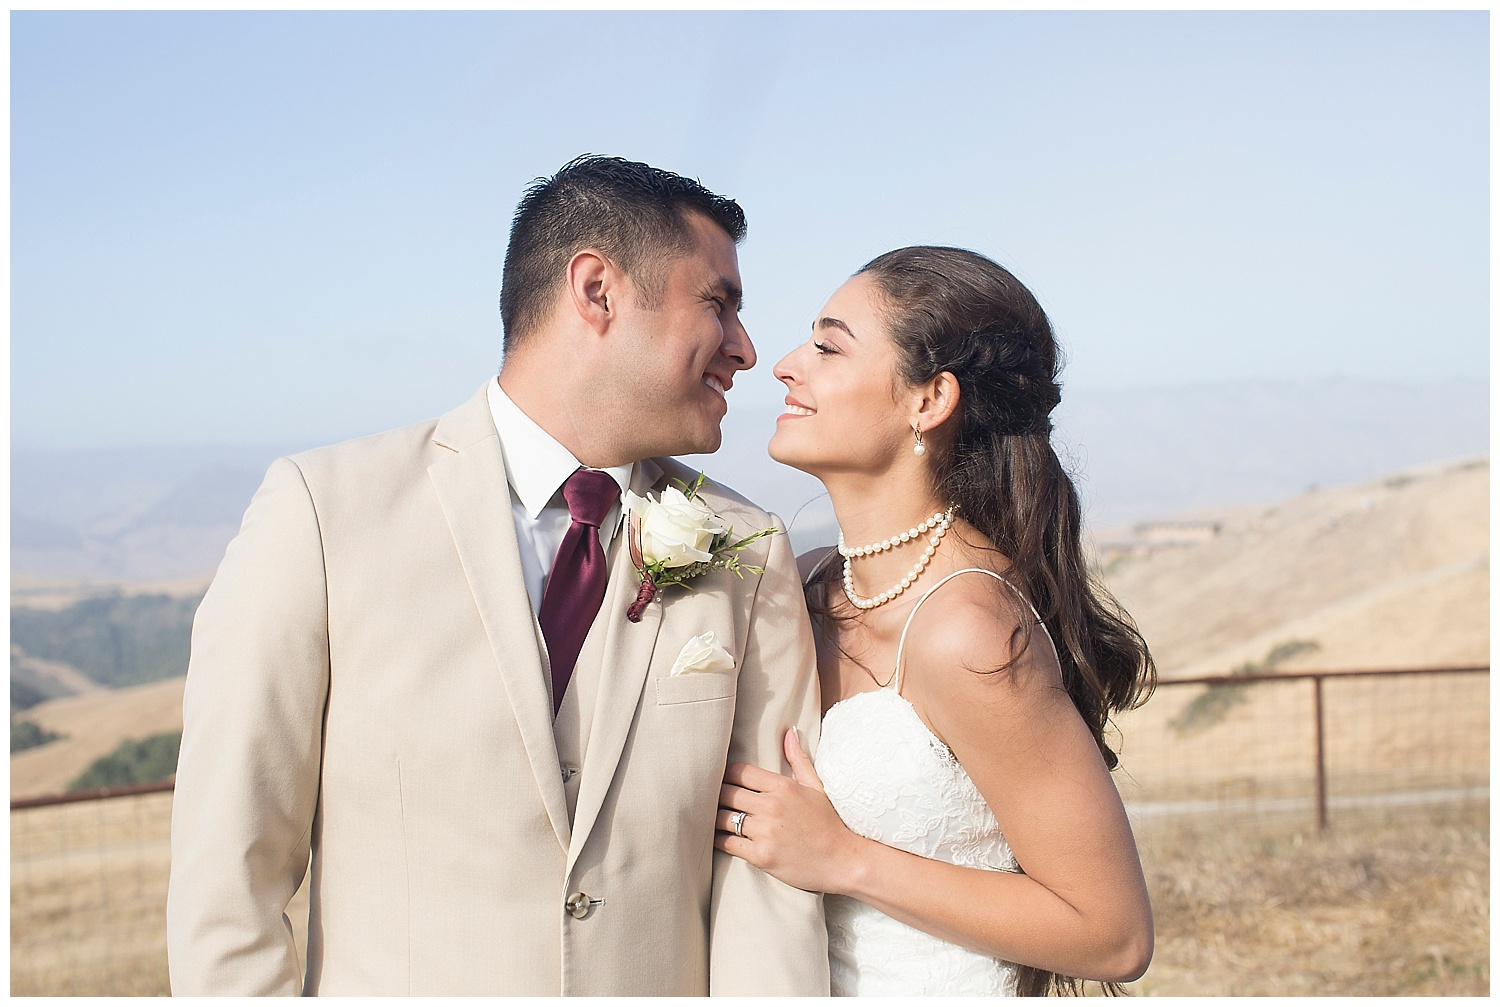 a_Ryan+Allyson_Renoda Campbell Photography_San Luis Obispo Wedding Photographer-9968.jpg